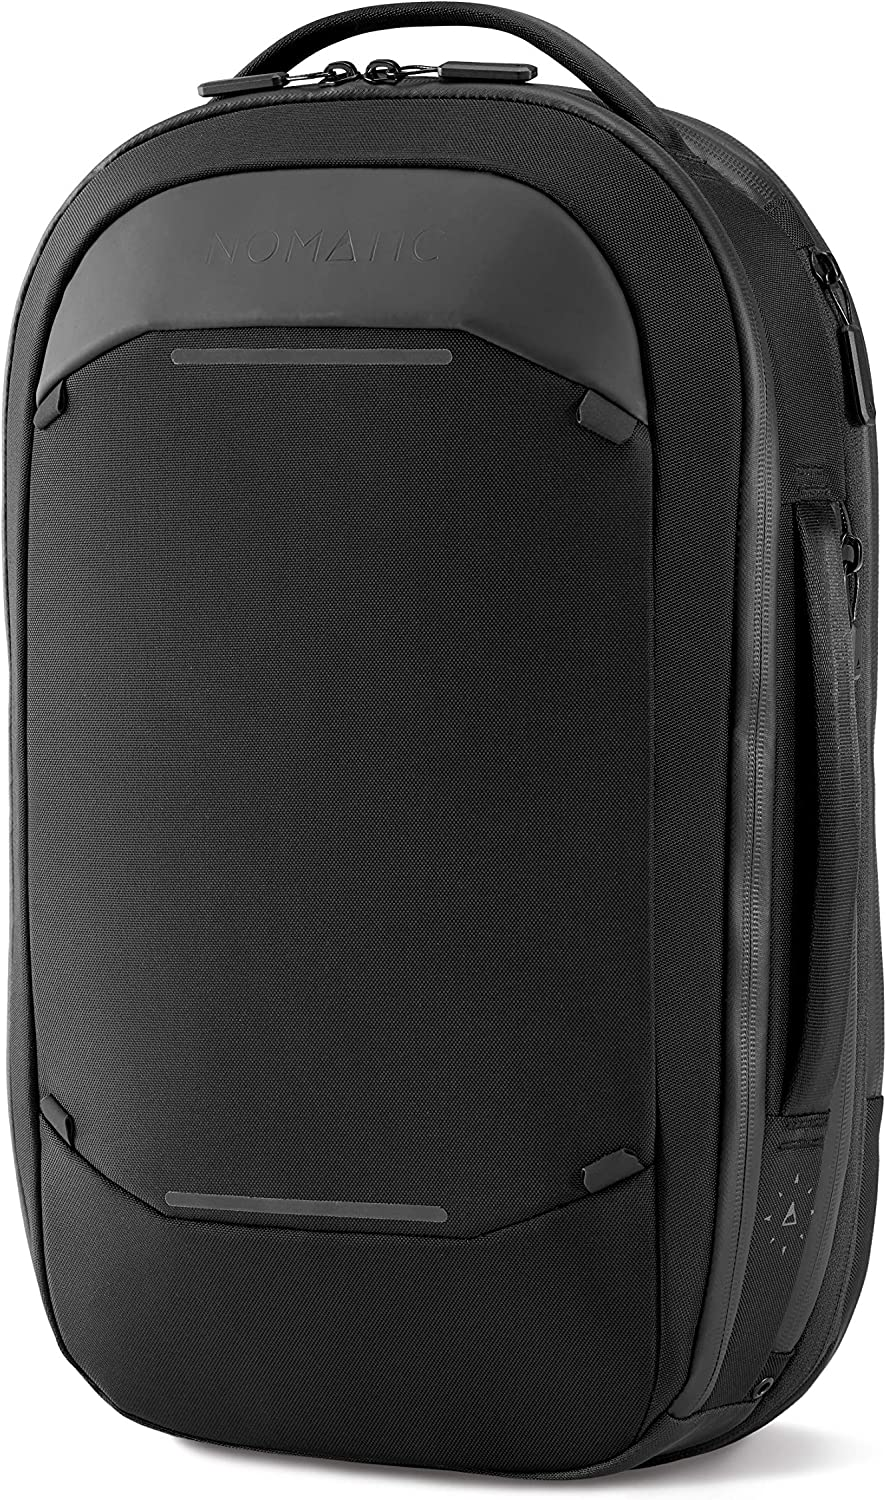 NOMATIC Navigator Premium Backpack 15L w/ 6L Built-In Expansion- Anti-Theft, Water Resistant & Cord Passthrough- Carry On Travel Laptop Backpack